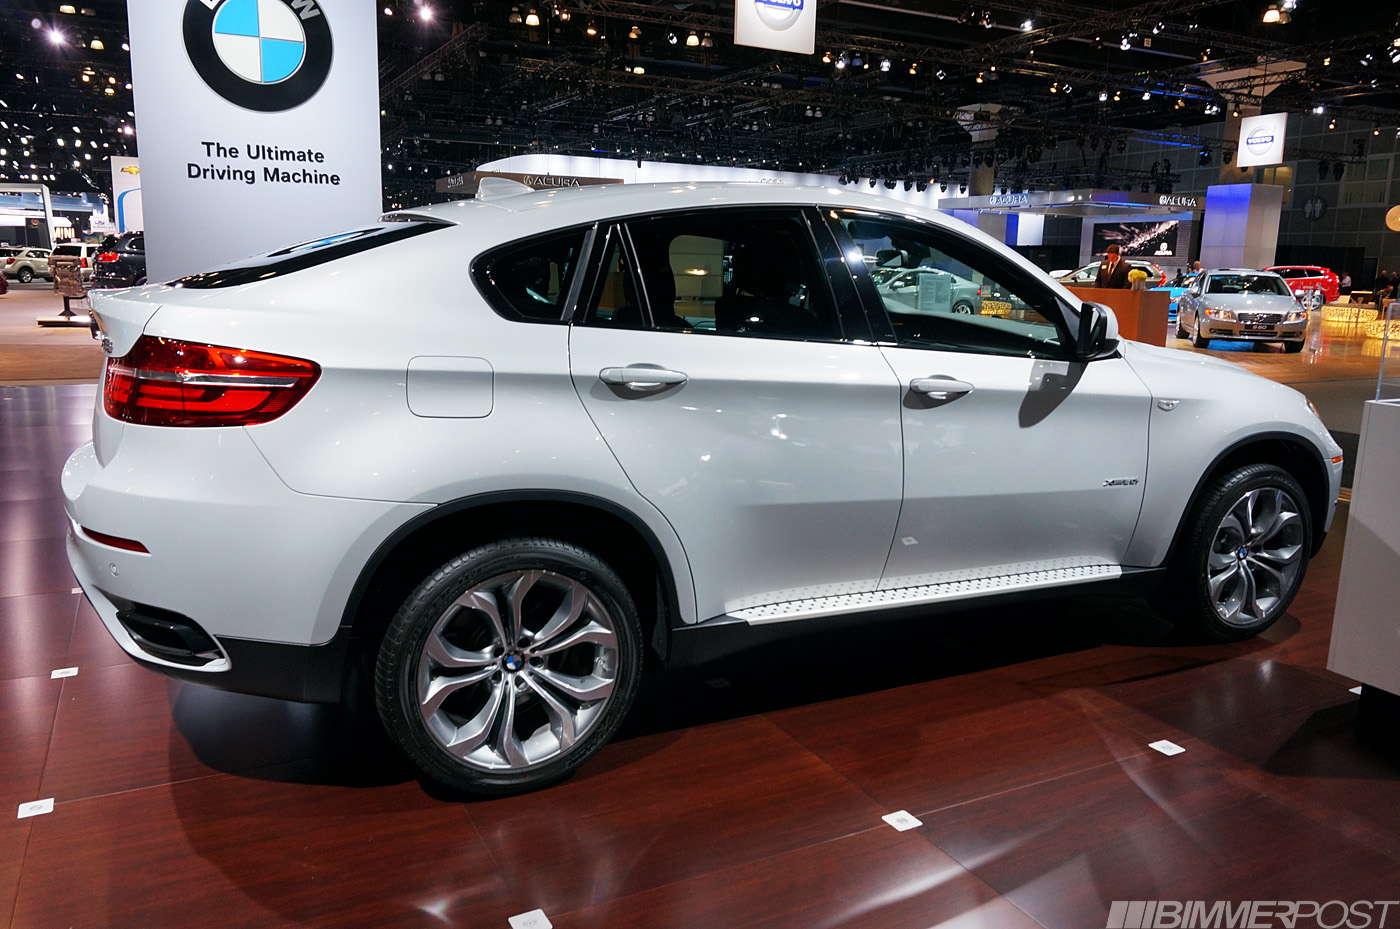 La 2012 Bmw Individual X6 Performance Edition Xdrive50i